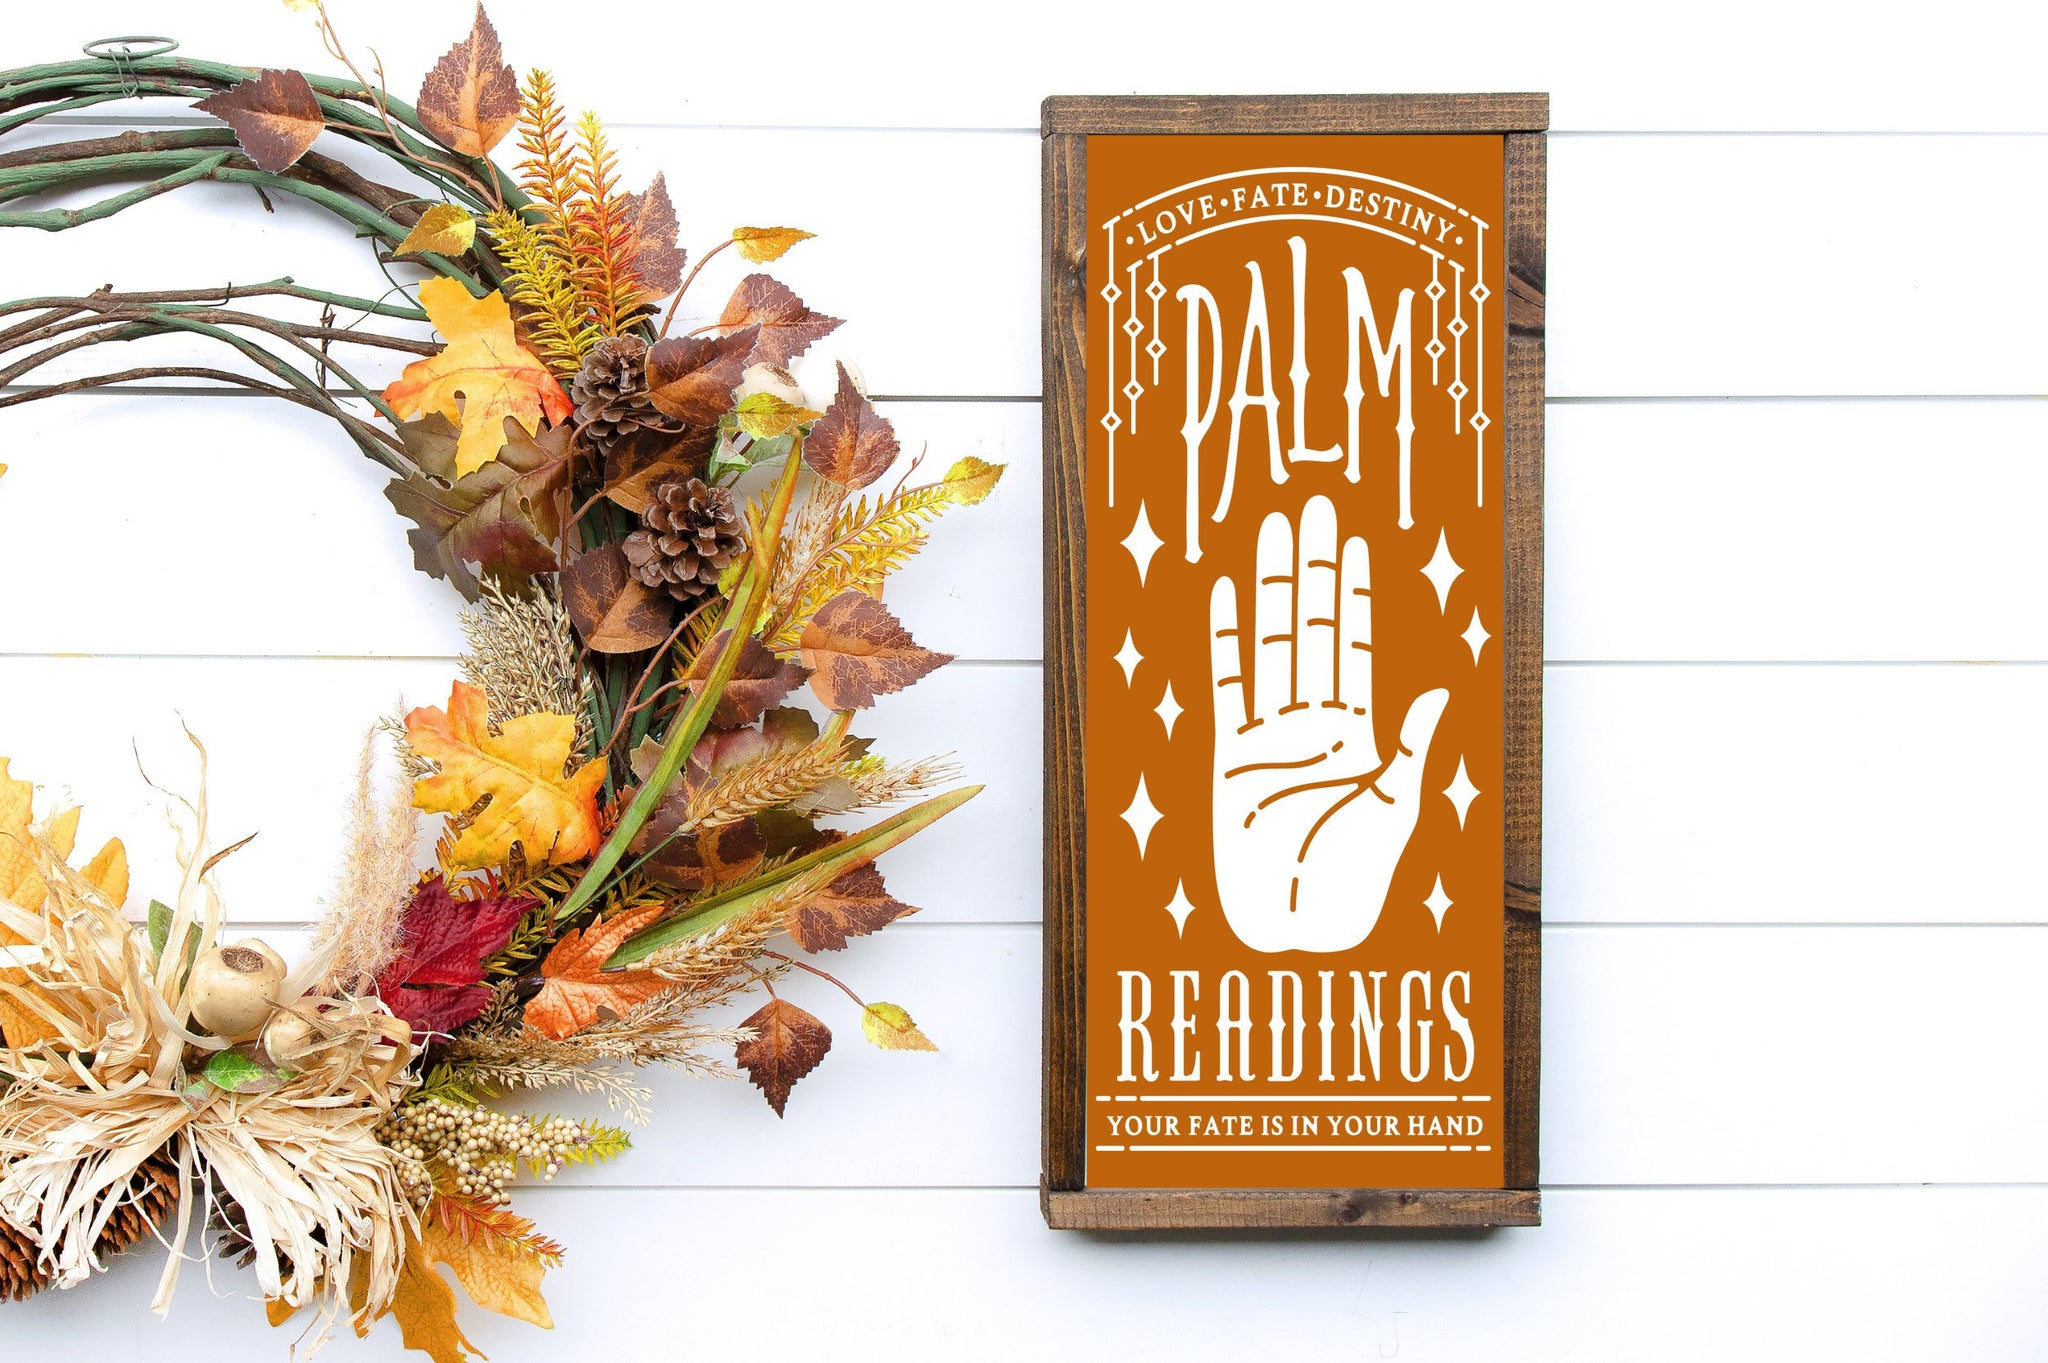 Halloween Décor - Palm Readings -  MORE COLOR & SIZES - Wood Sign - Fall Décor - Autumn